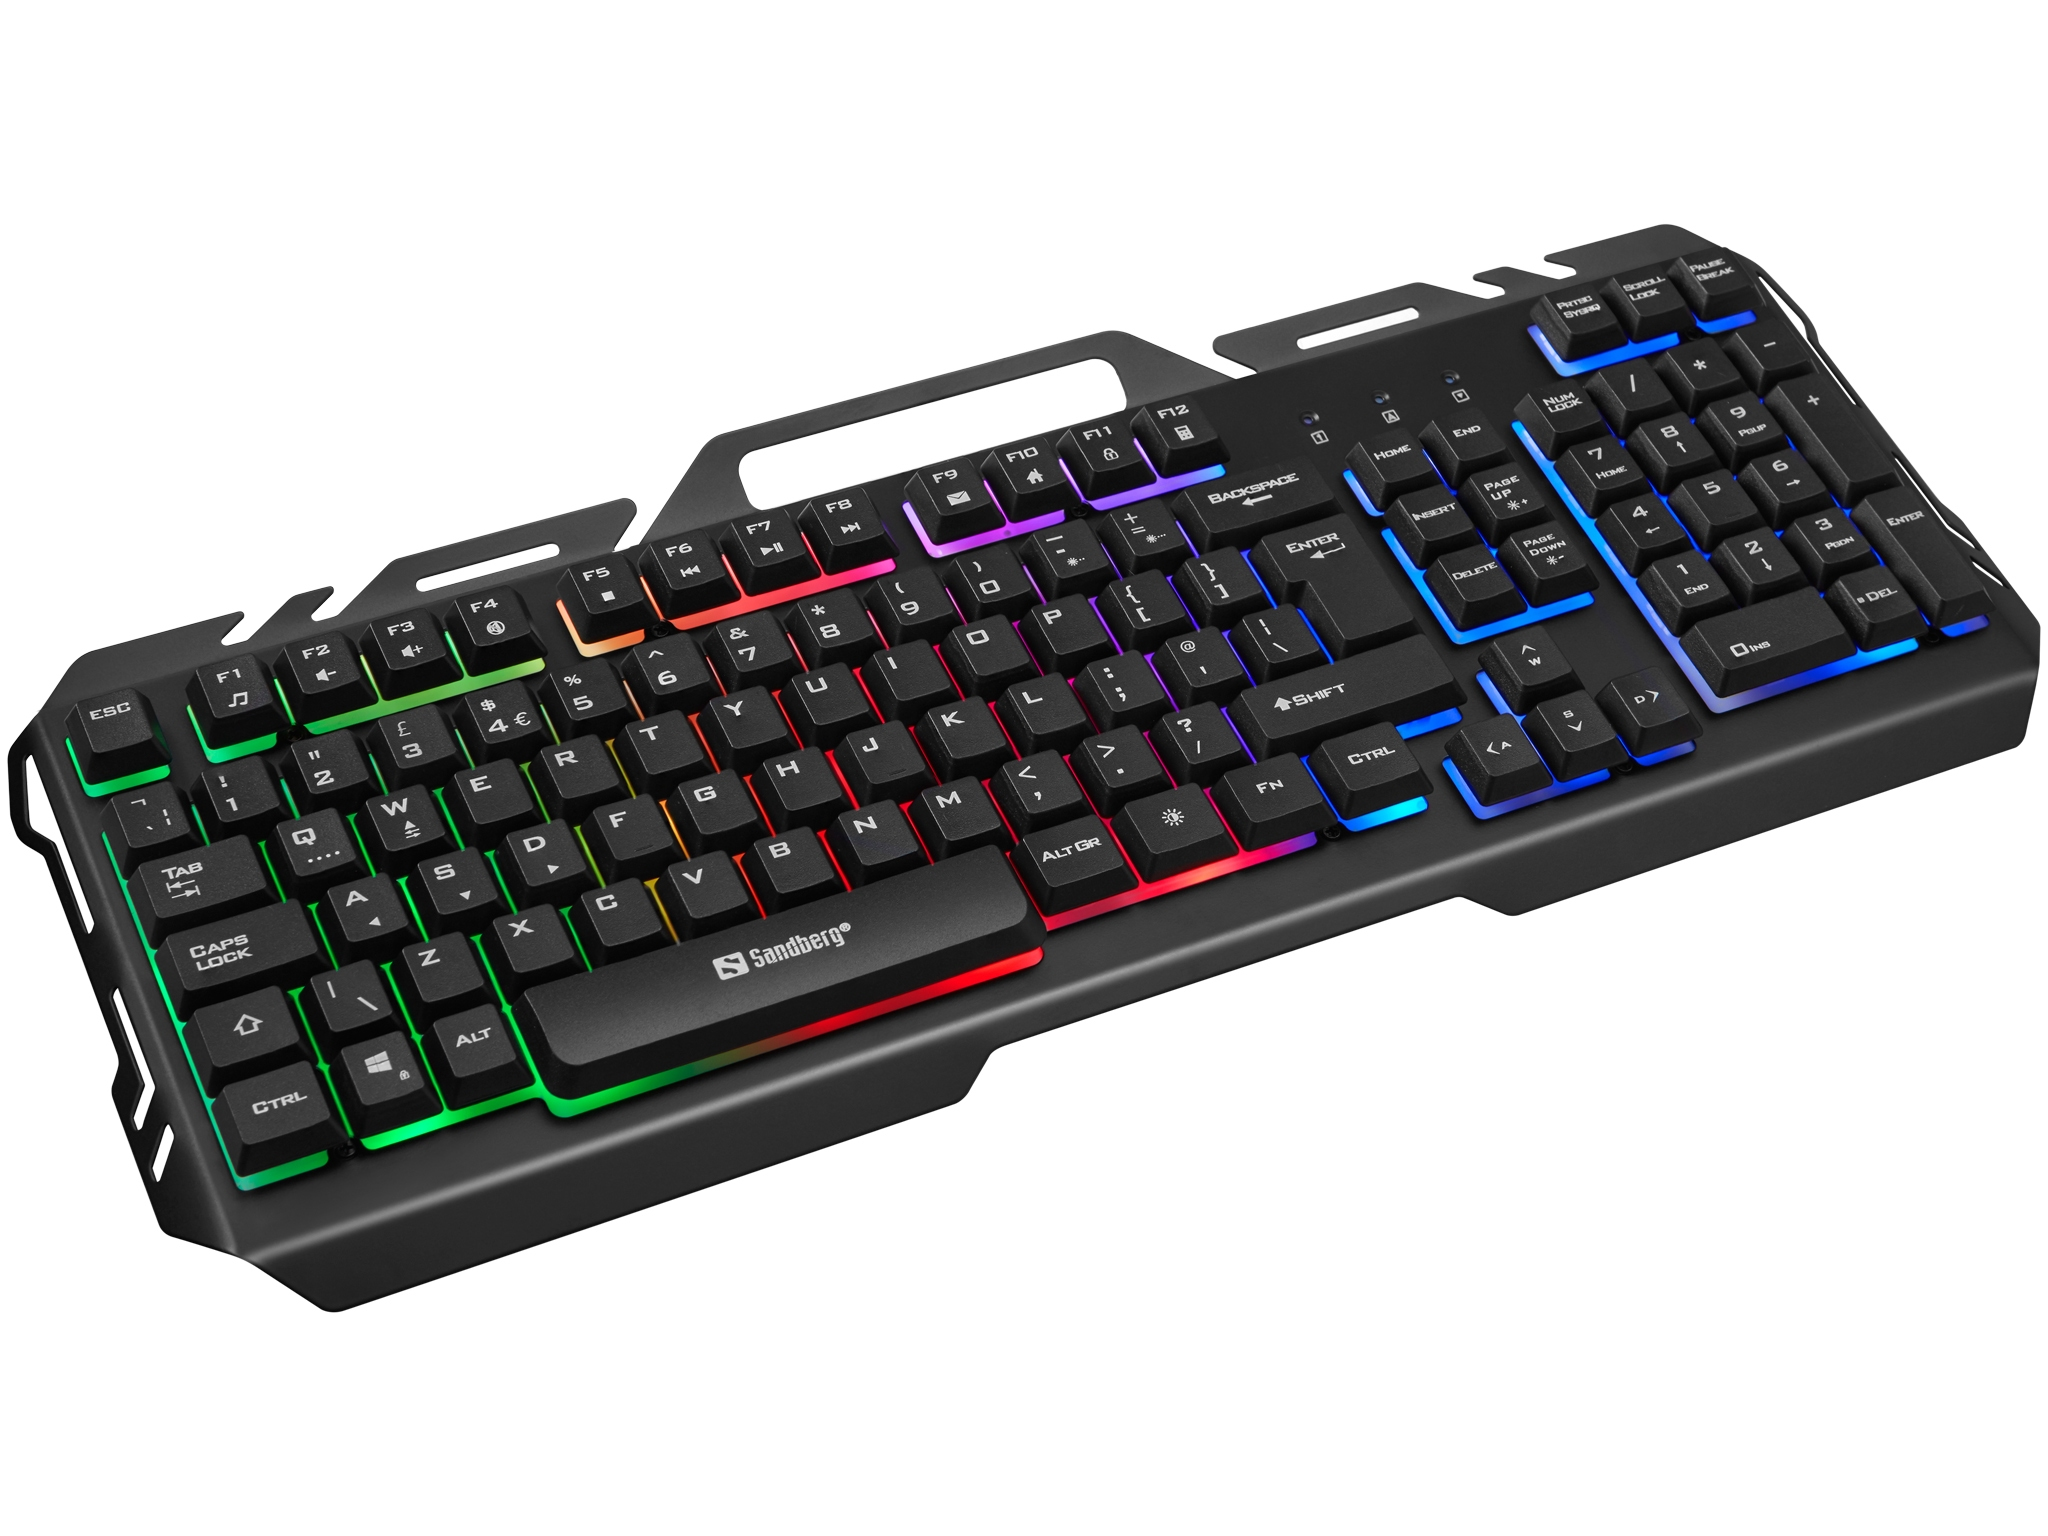 IronStorm Keyboard UK